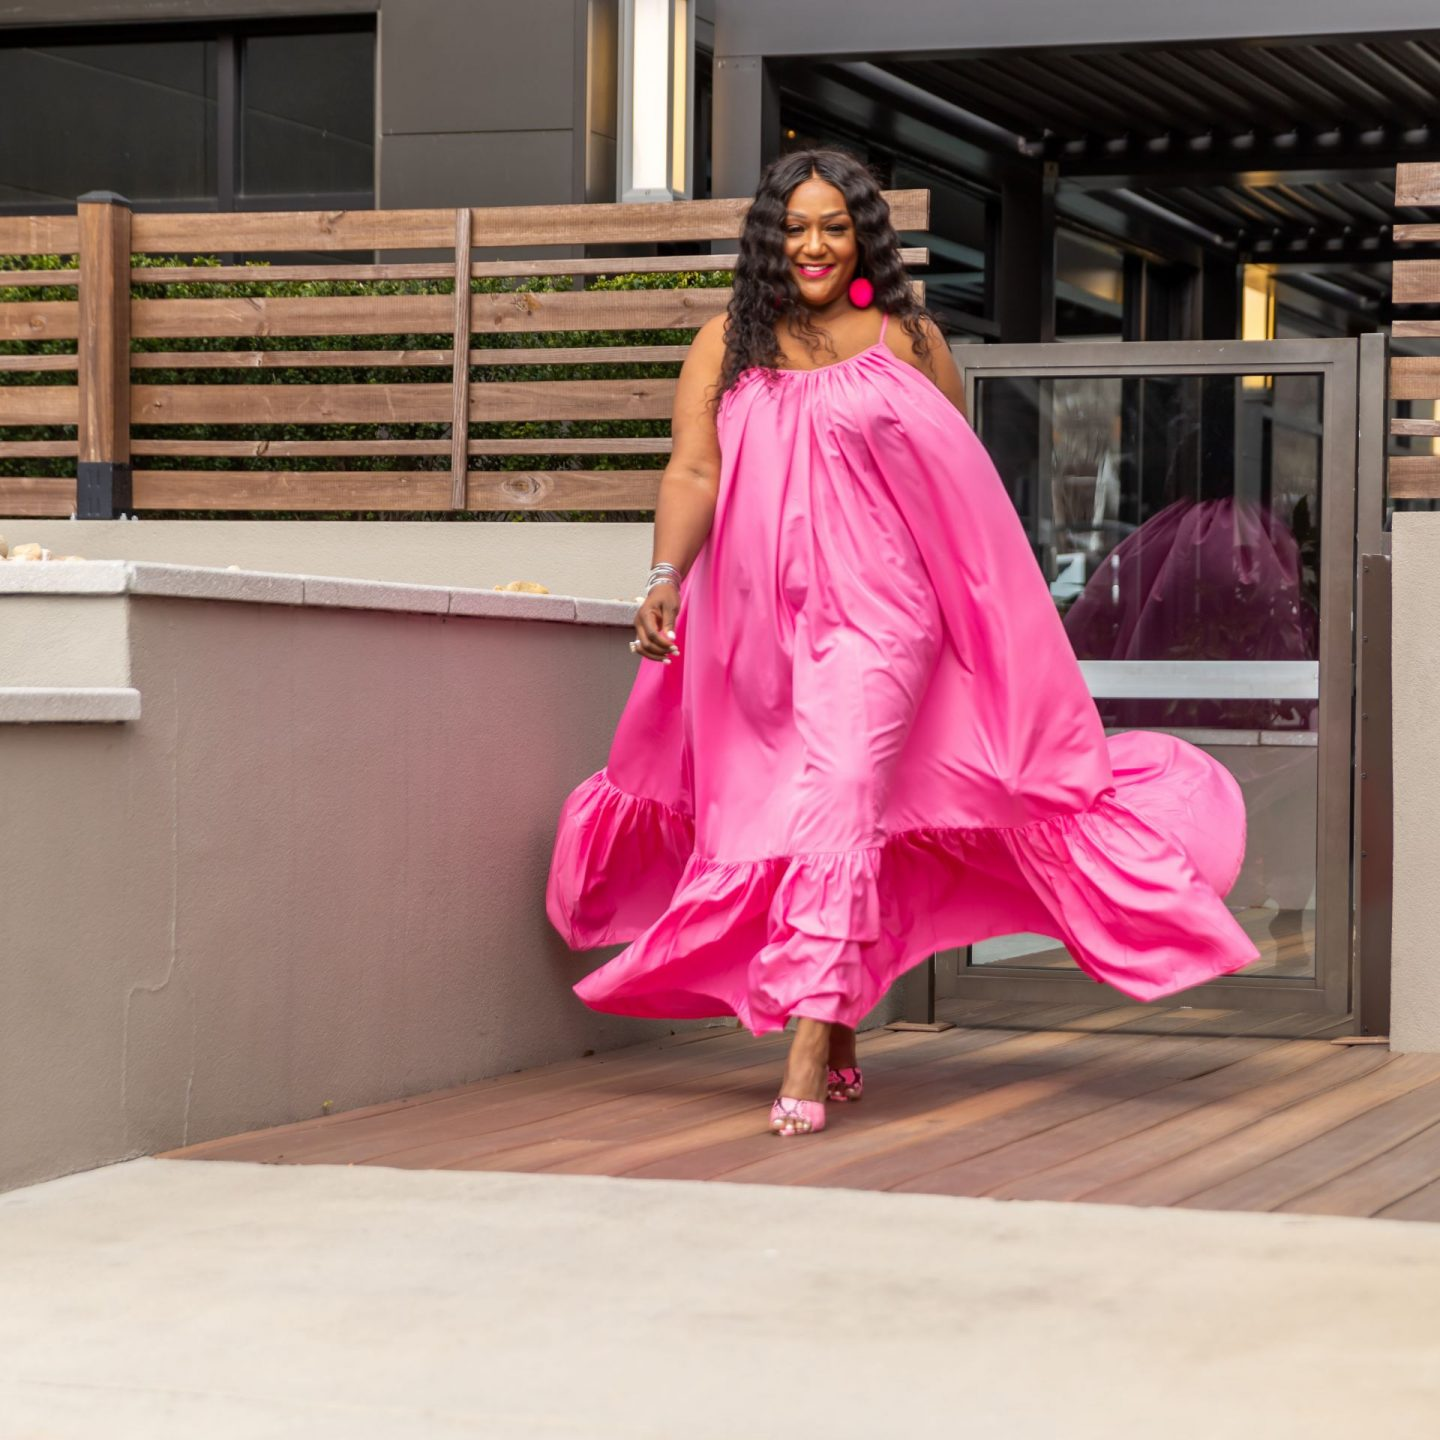 Black woman in flowing pink maxi sundress